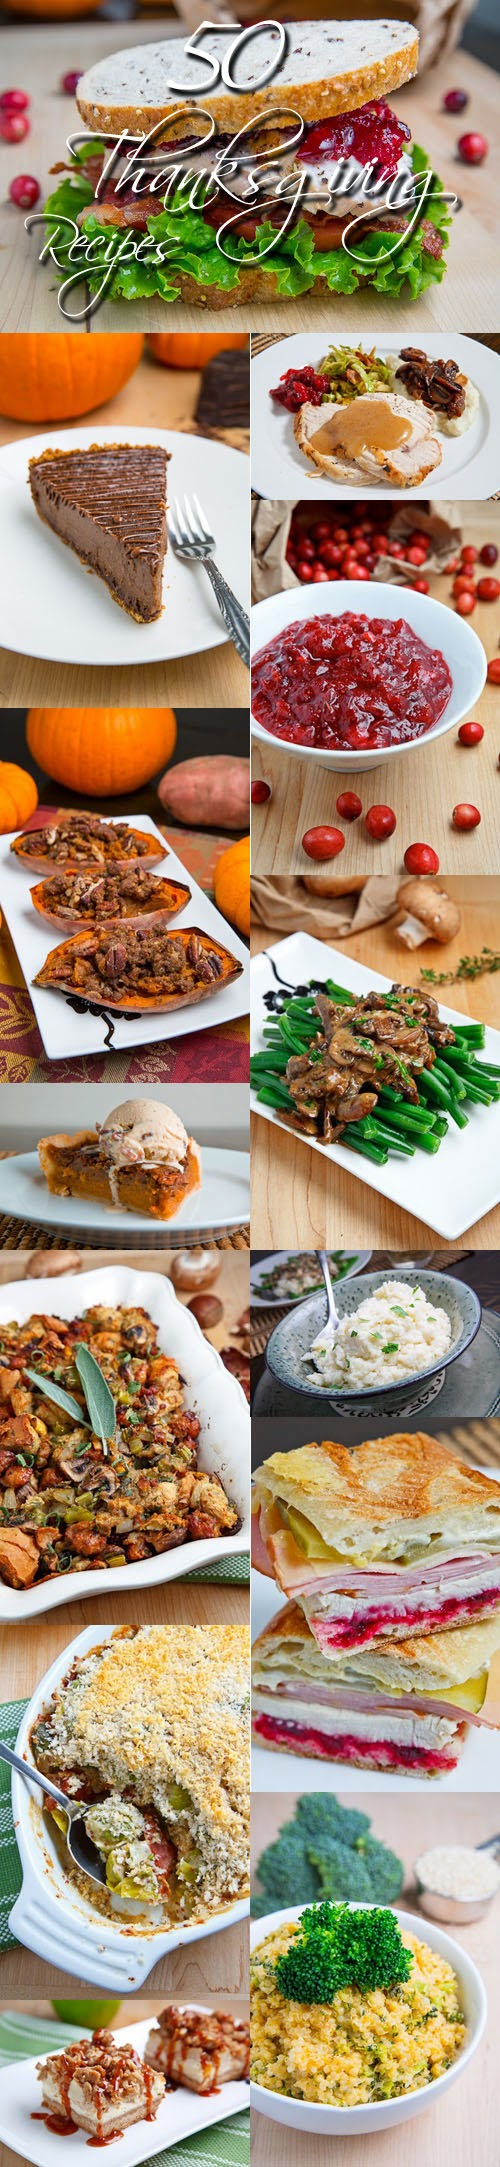 50 Thanksgiving Recipes